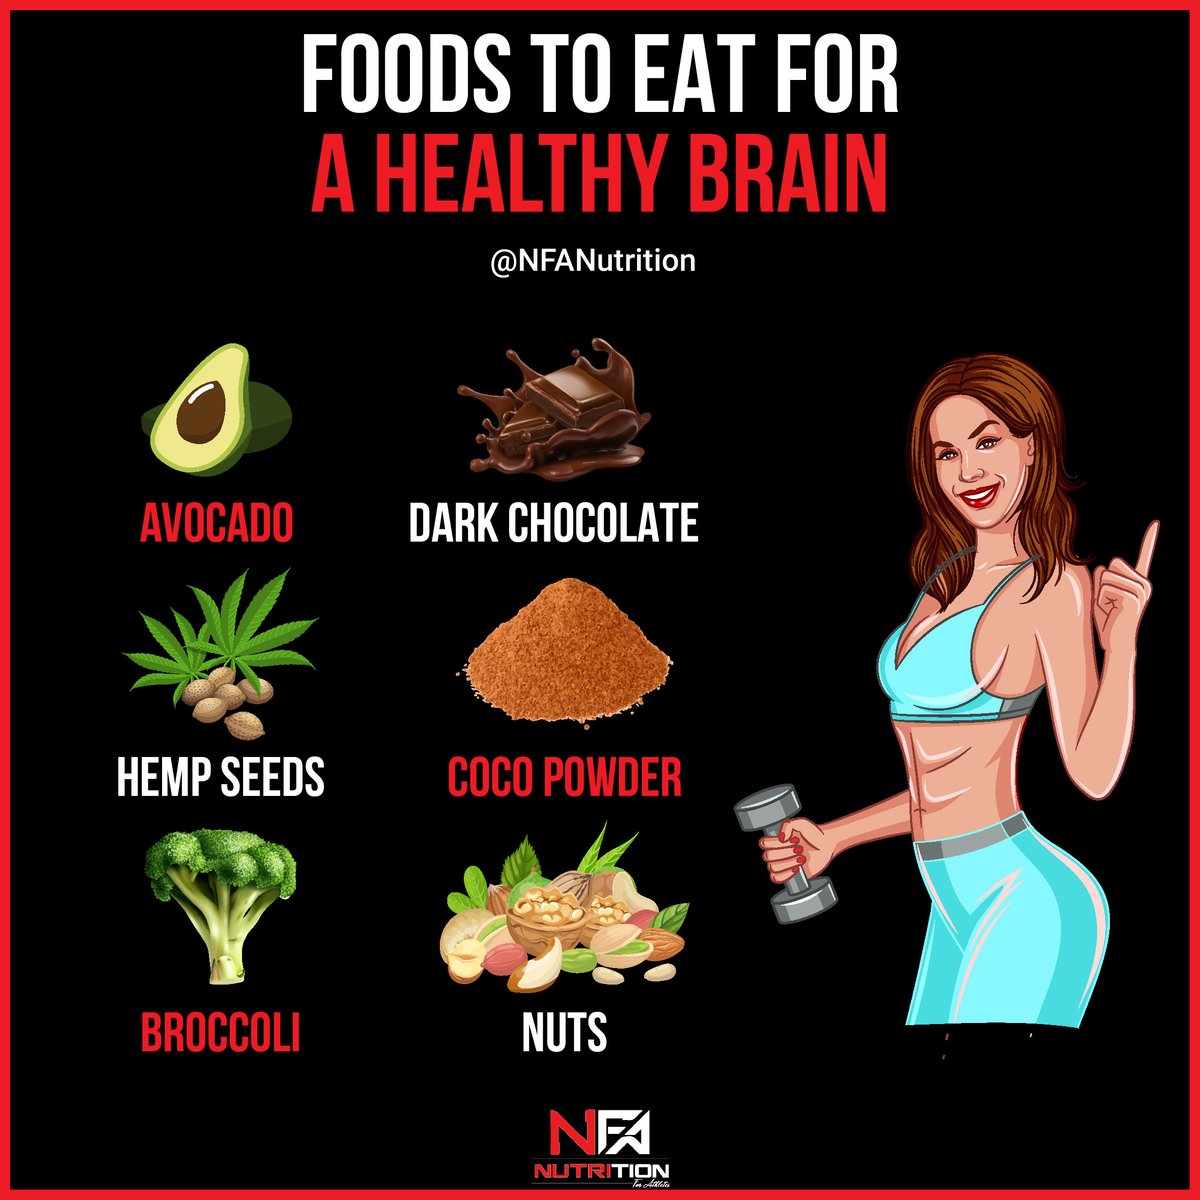 Here's 6 foods that you can eat for a healthy brain! 1) AVOCADO 2) DARK CHOCOLATE (PS THIS IS ONLY A CHEAT TREAT!) 3) HELP SEEDS 4) COCO POWDER 5) BROCCOLI 6) NUTS https://t.co/gt7IB2Oubx